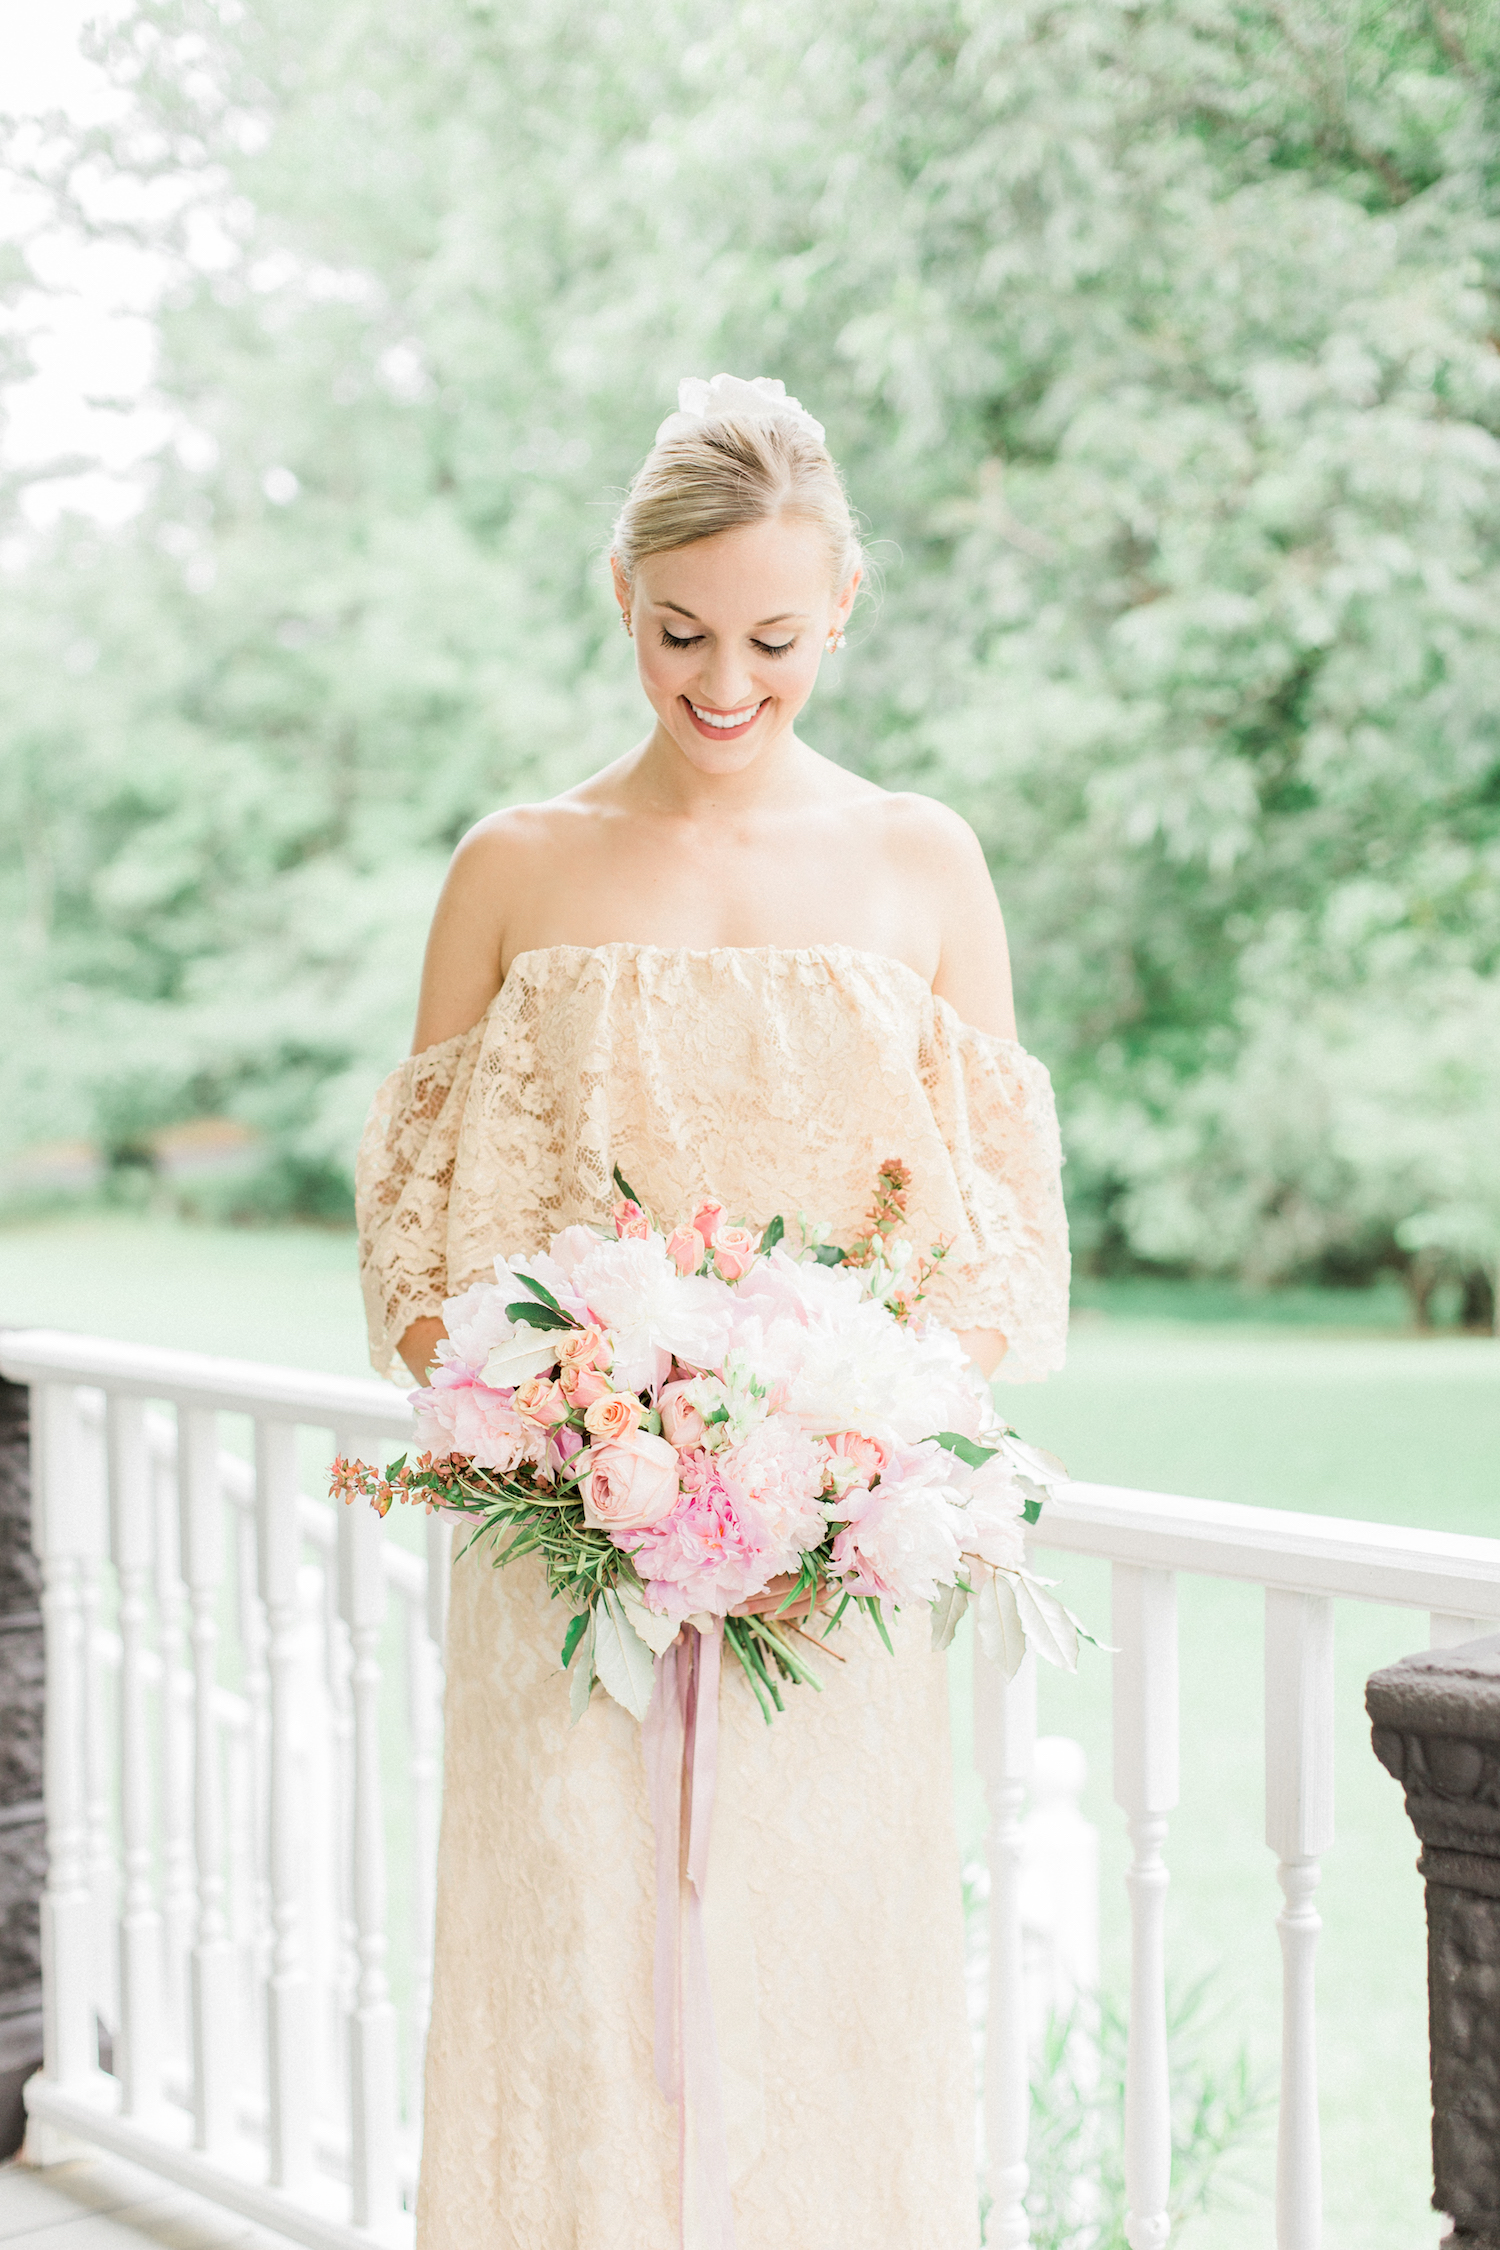 Gold off shoulder lace bohemian wedding dress with pink wedding bouquet.